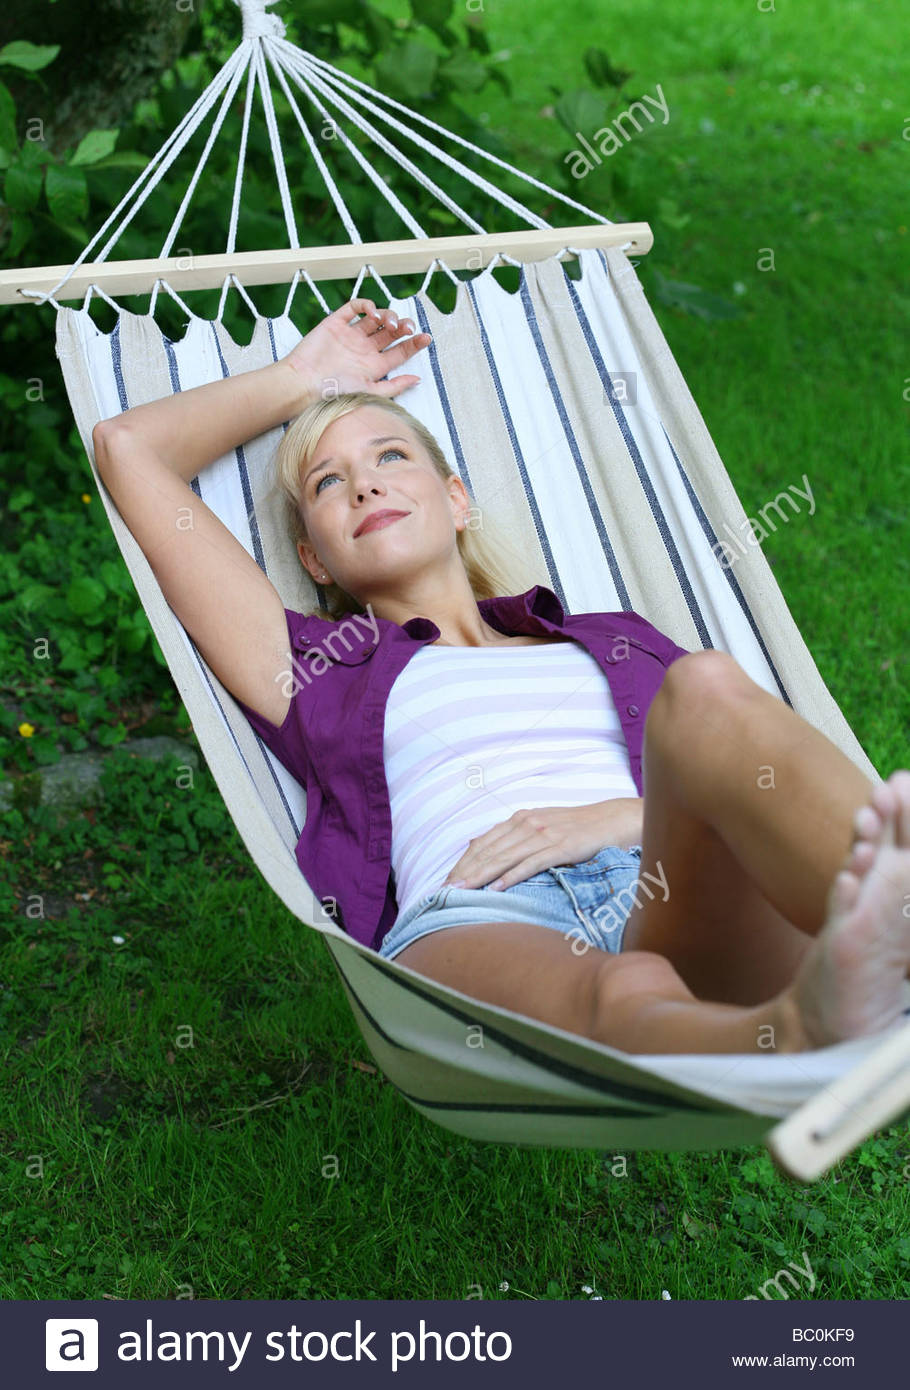 young blond woman relaxing in hammock Stock Photo